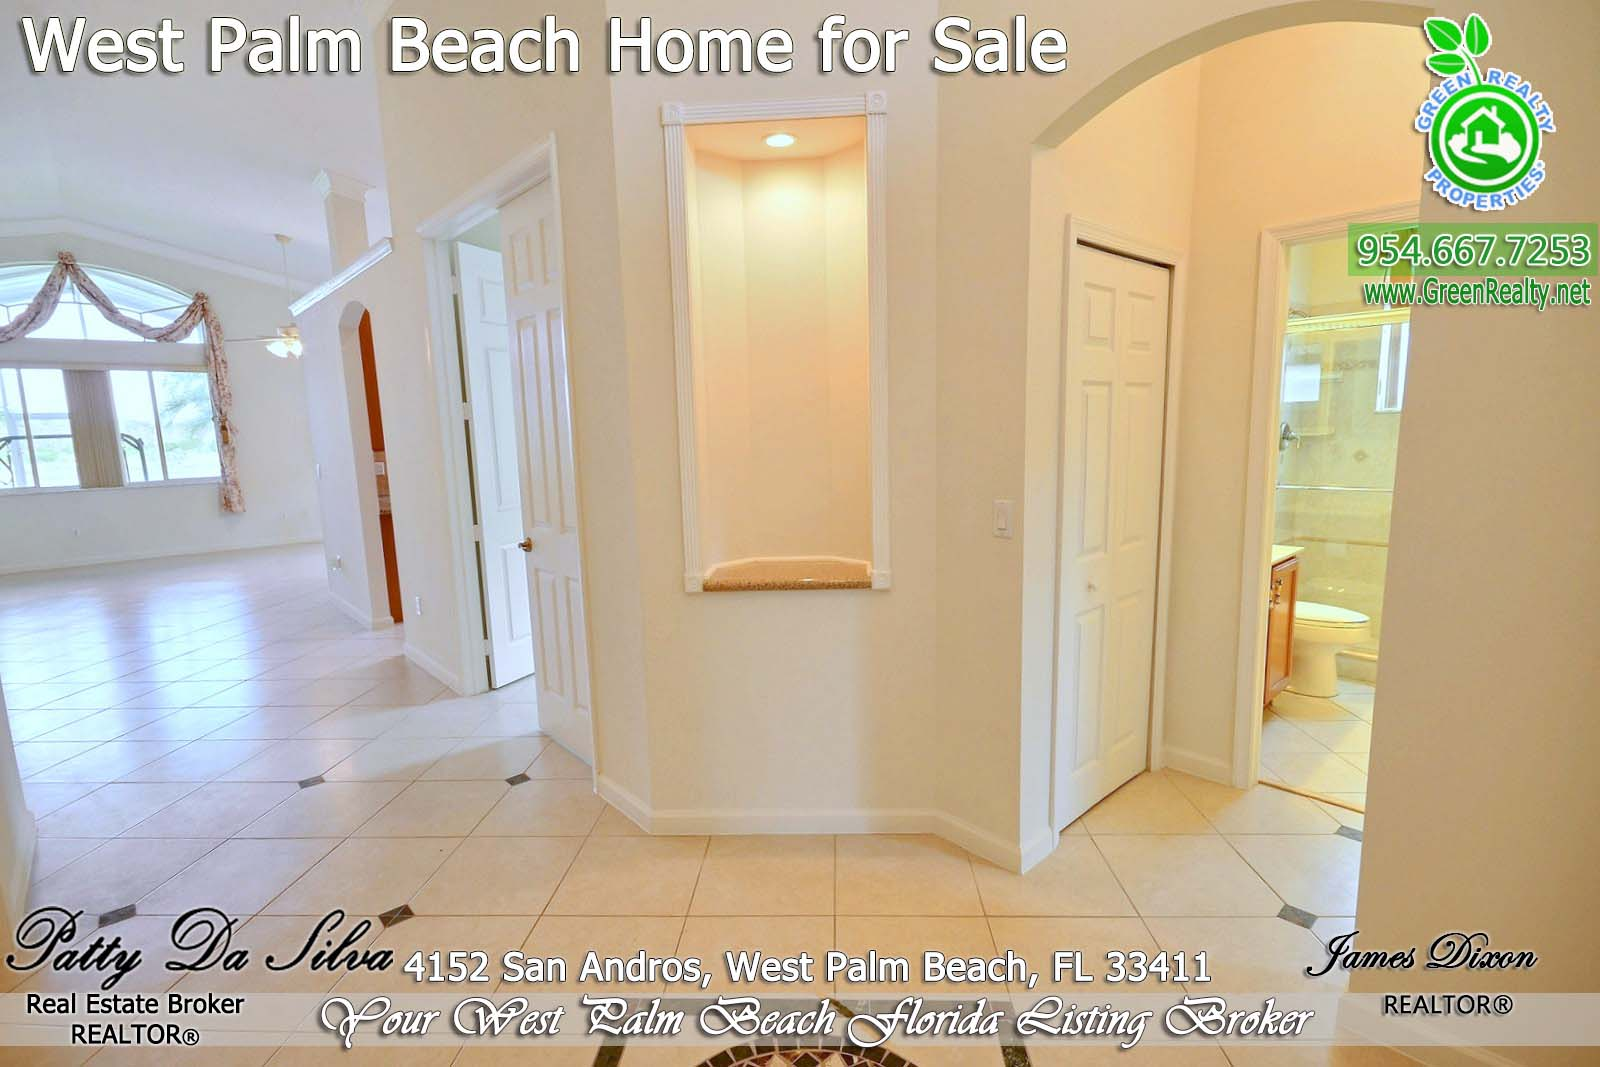 West Palm Beach Real Estate - 4152 San Andros (18)_1